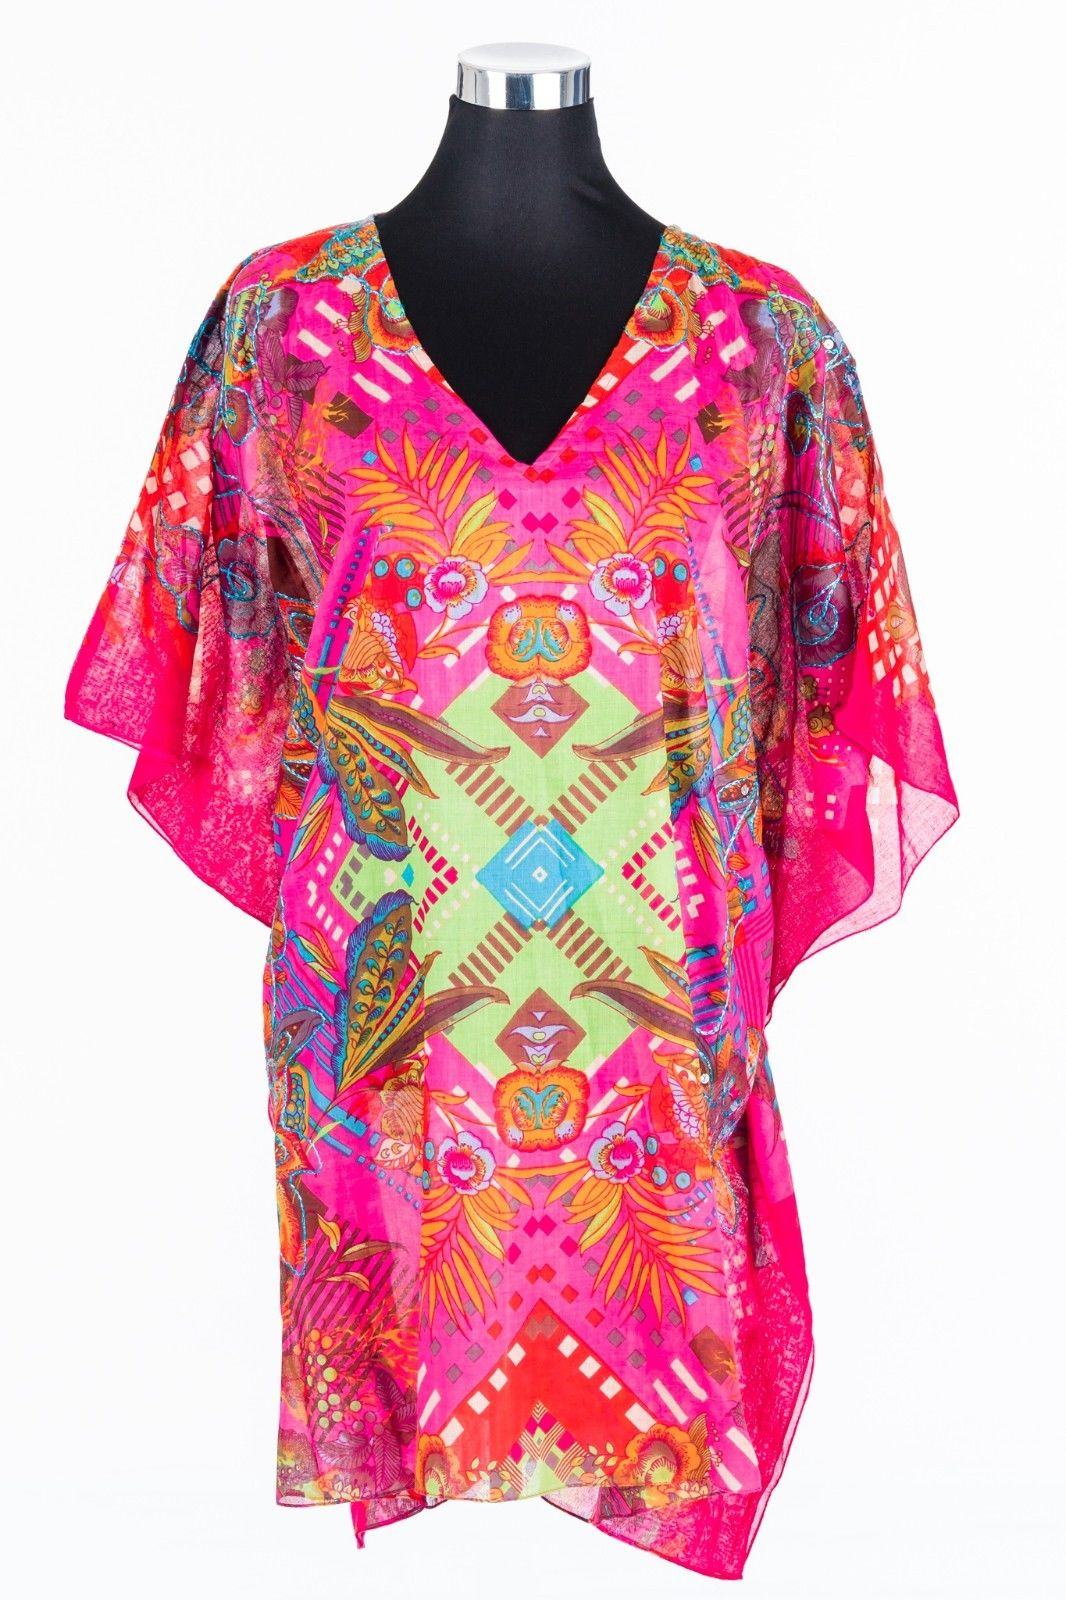 Cotton-embroidered-Ladies-Kaftan-Tunic-Top-Pink-Floral-Design-One-Size-Plus-Size-382139629235